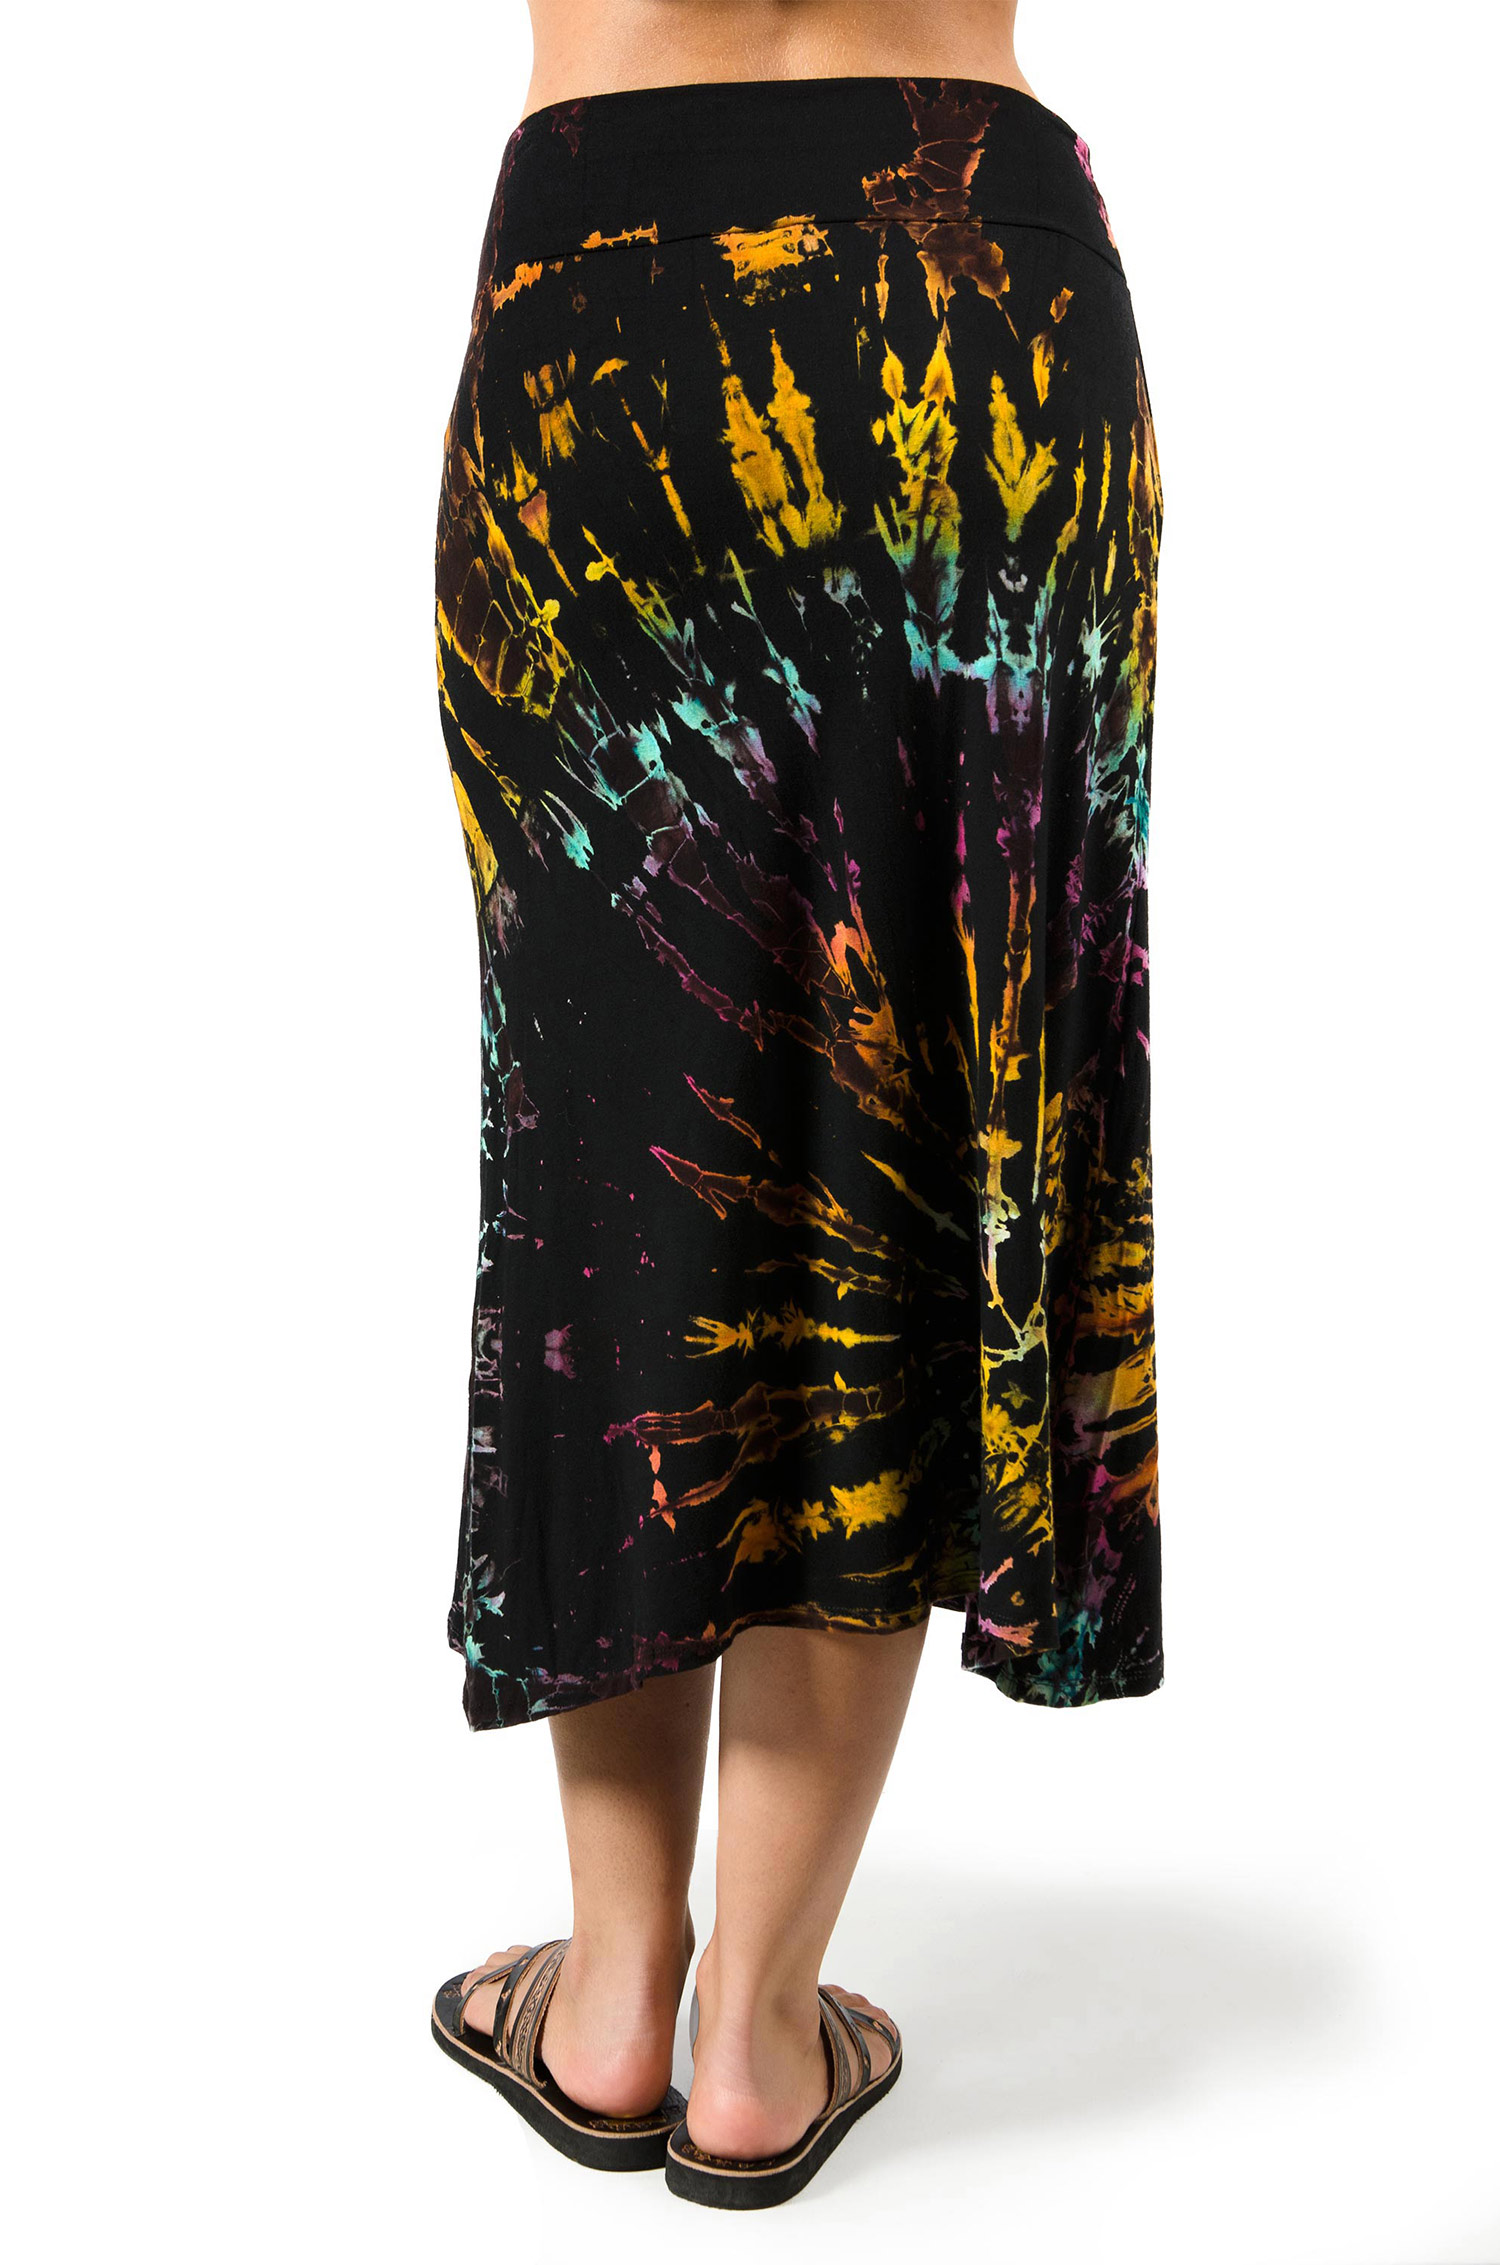 Hand Painted Tie Dye A-Line Midi Skirt - Black Multi - 3428K